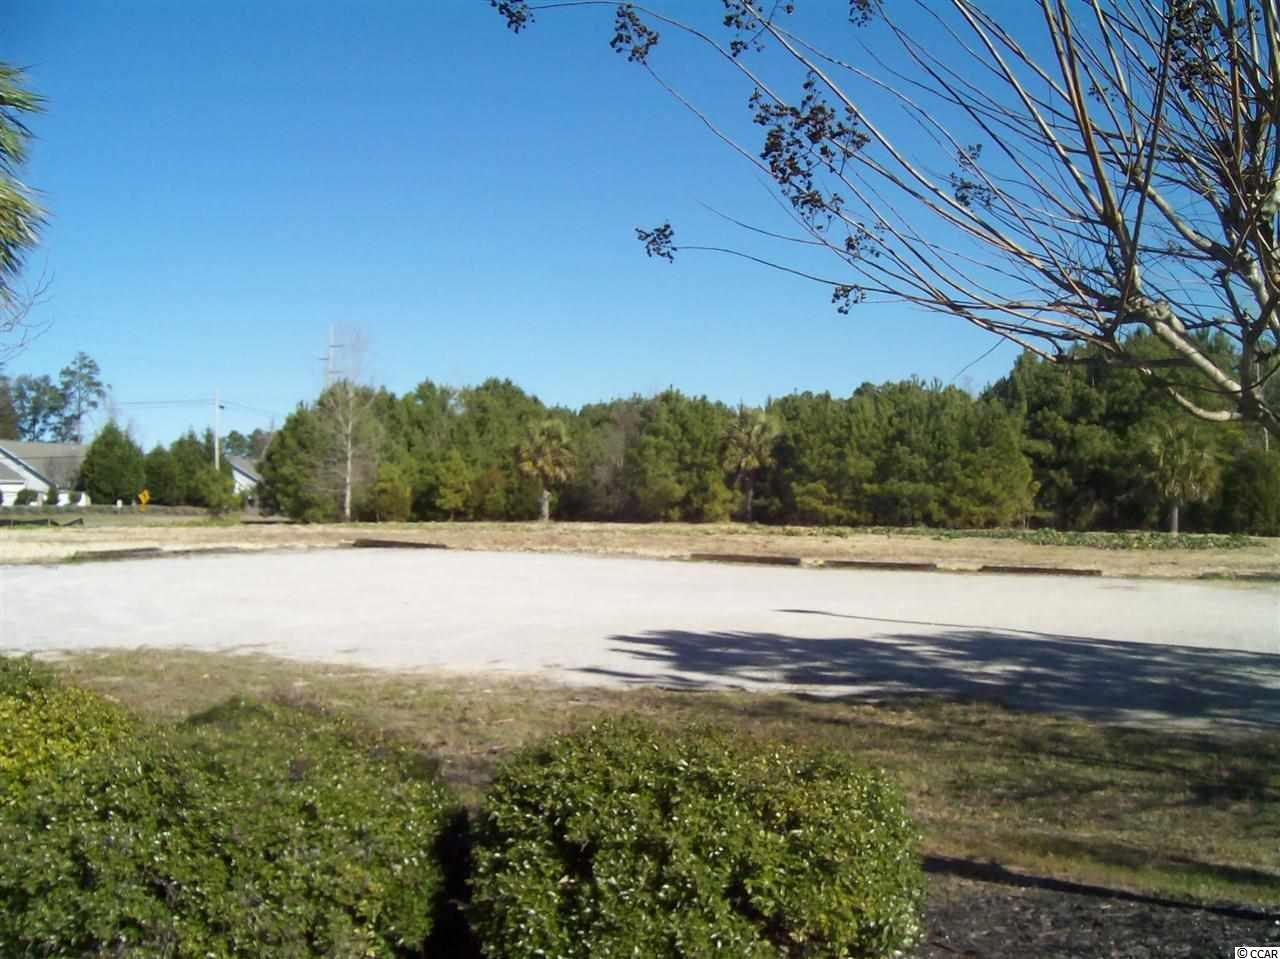 Cleared and ready to develop.  This 1.24 acre is directly behind Outback Steakhouse and north of K&W on Old Business 17 in North Myrtle Beach.  This 1.24 acre site is the last available parcel in the area. Join Applebee, Outback, Sea Coast Medical, Jiffy Lube, Carolina BBQ, and Quality Inn & Suites at this sold-out commercial complex in the heart of the Ocean Drive/Tilghman section of North Myrtle Beach, just across 17 is the new Publix/Dicks Sporting Goods.  See attached plats.  Call your Broker today!